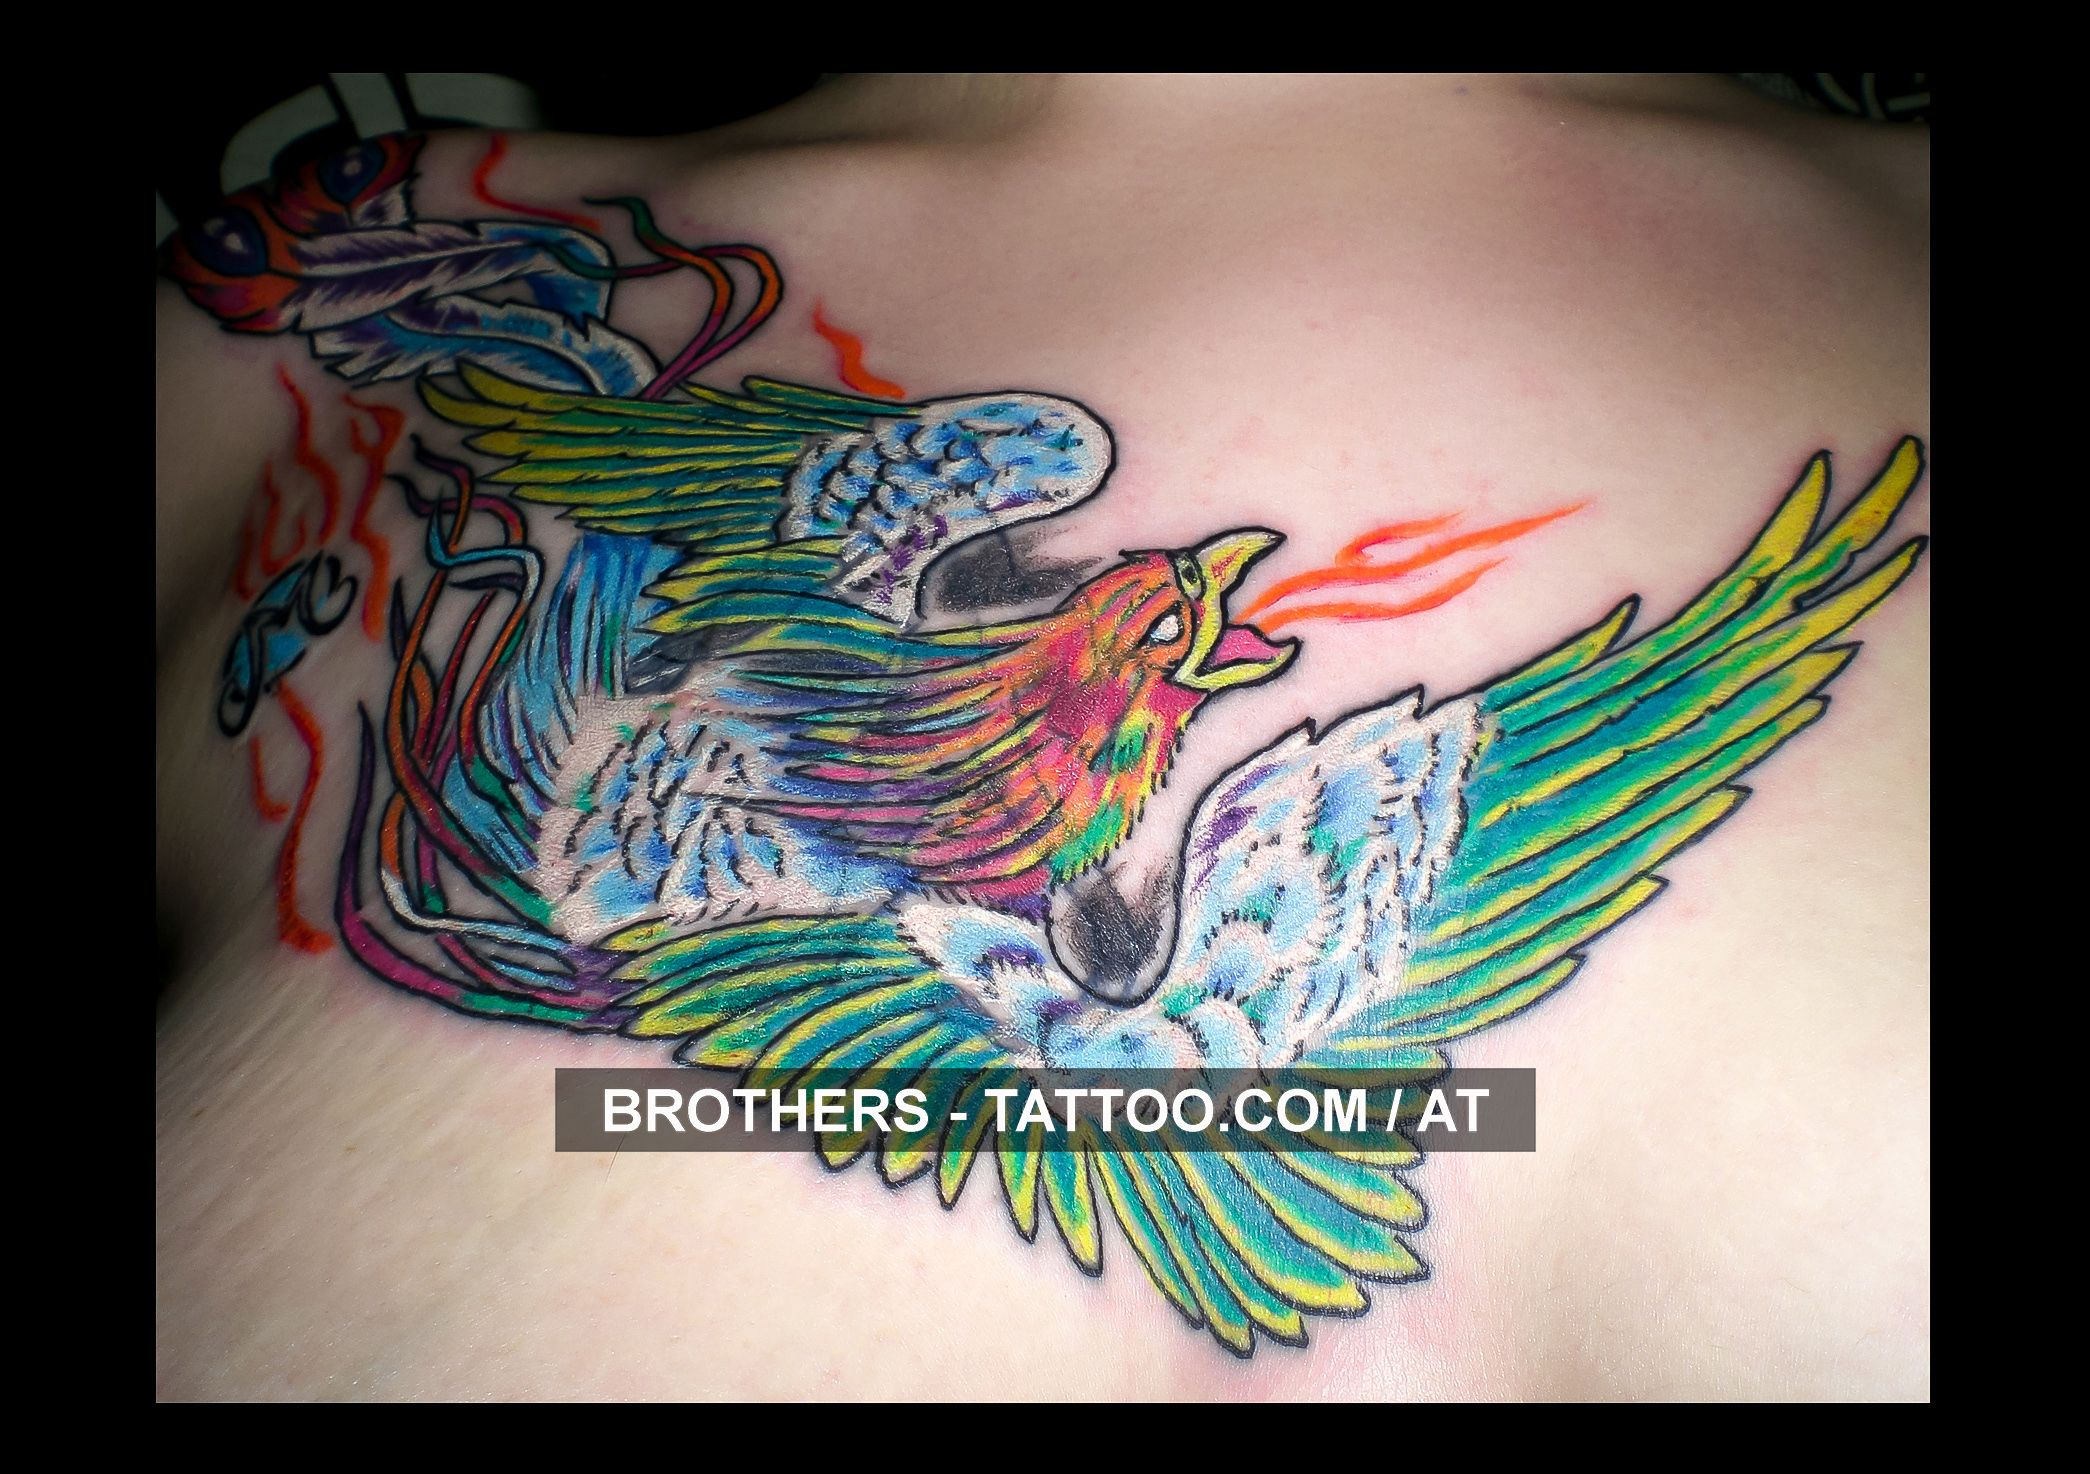 Cool tattoo ideas for brothers phonix tattoo cover up year  stagram